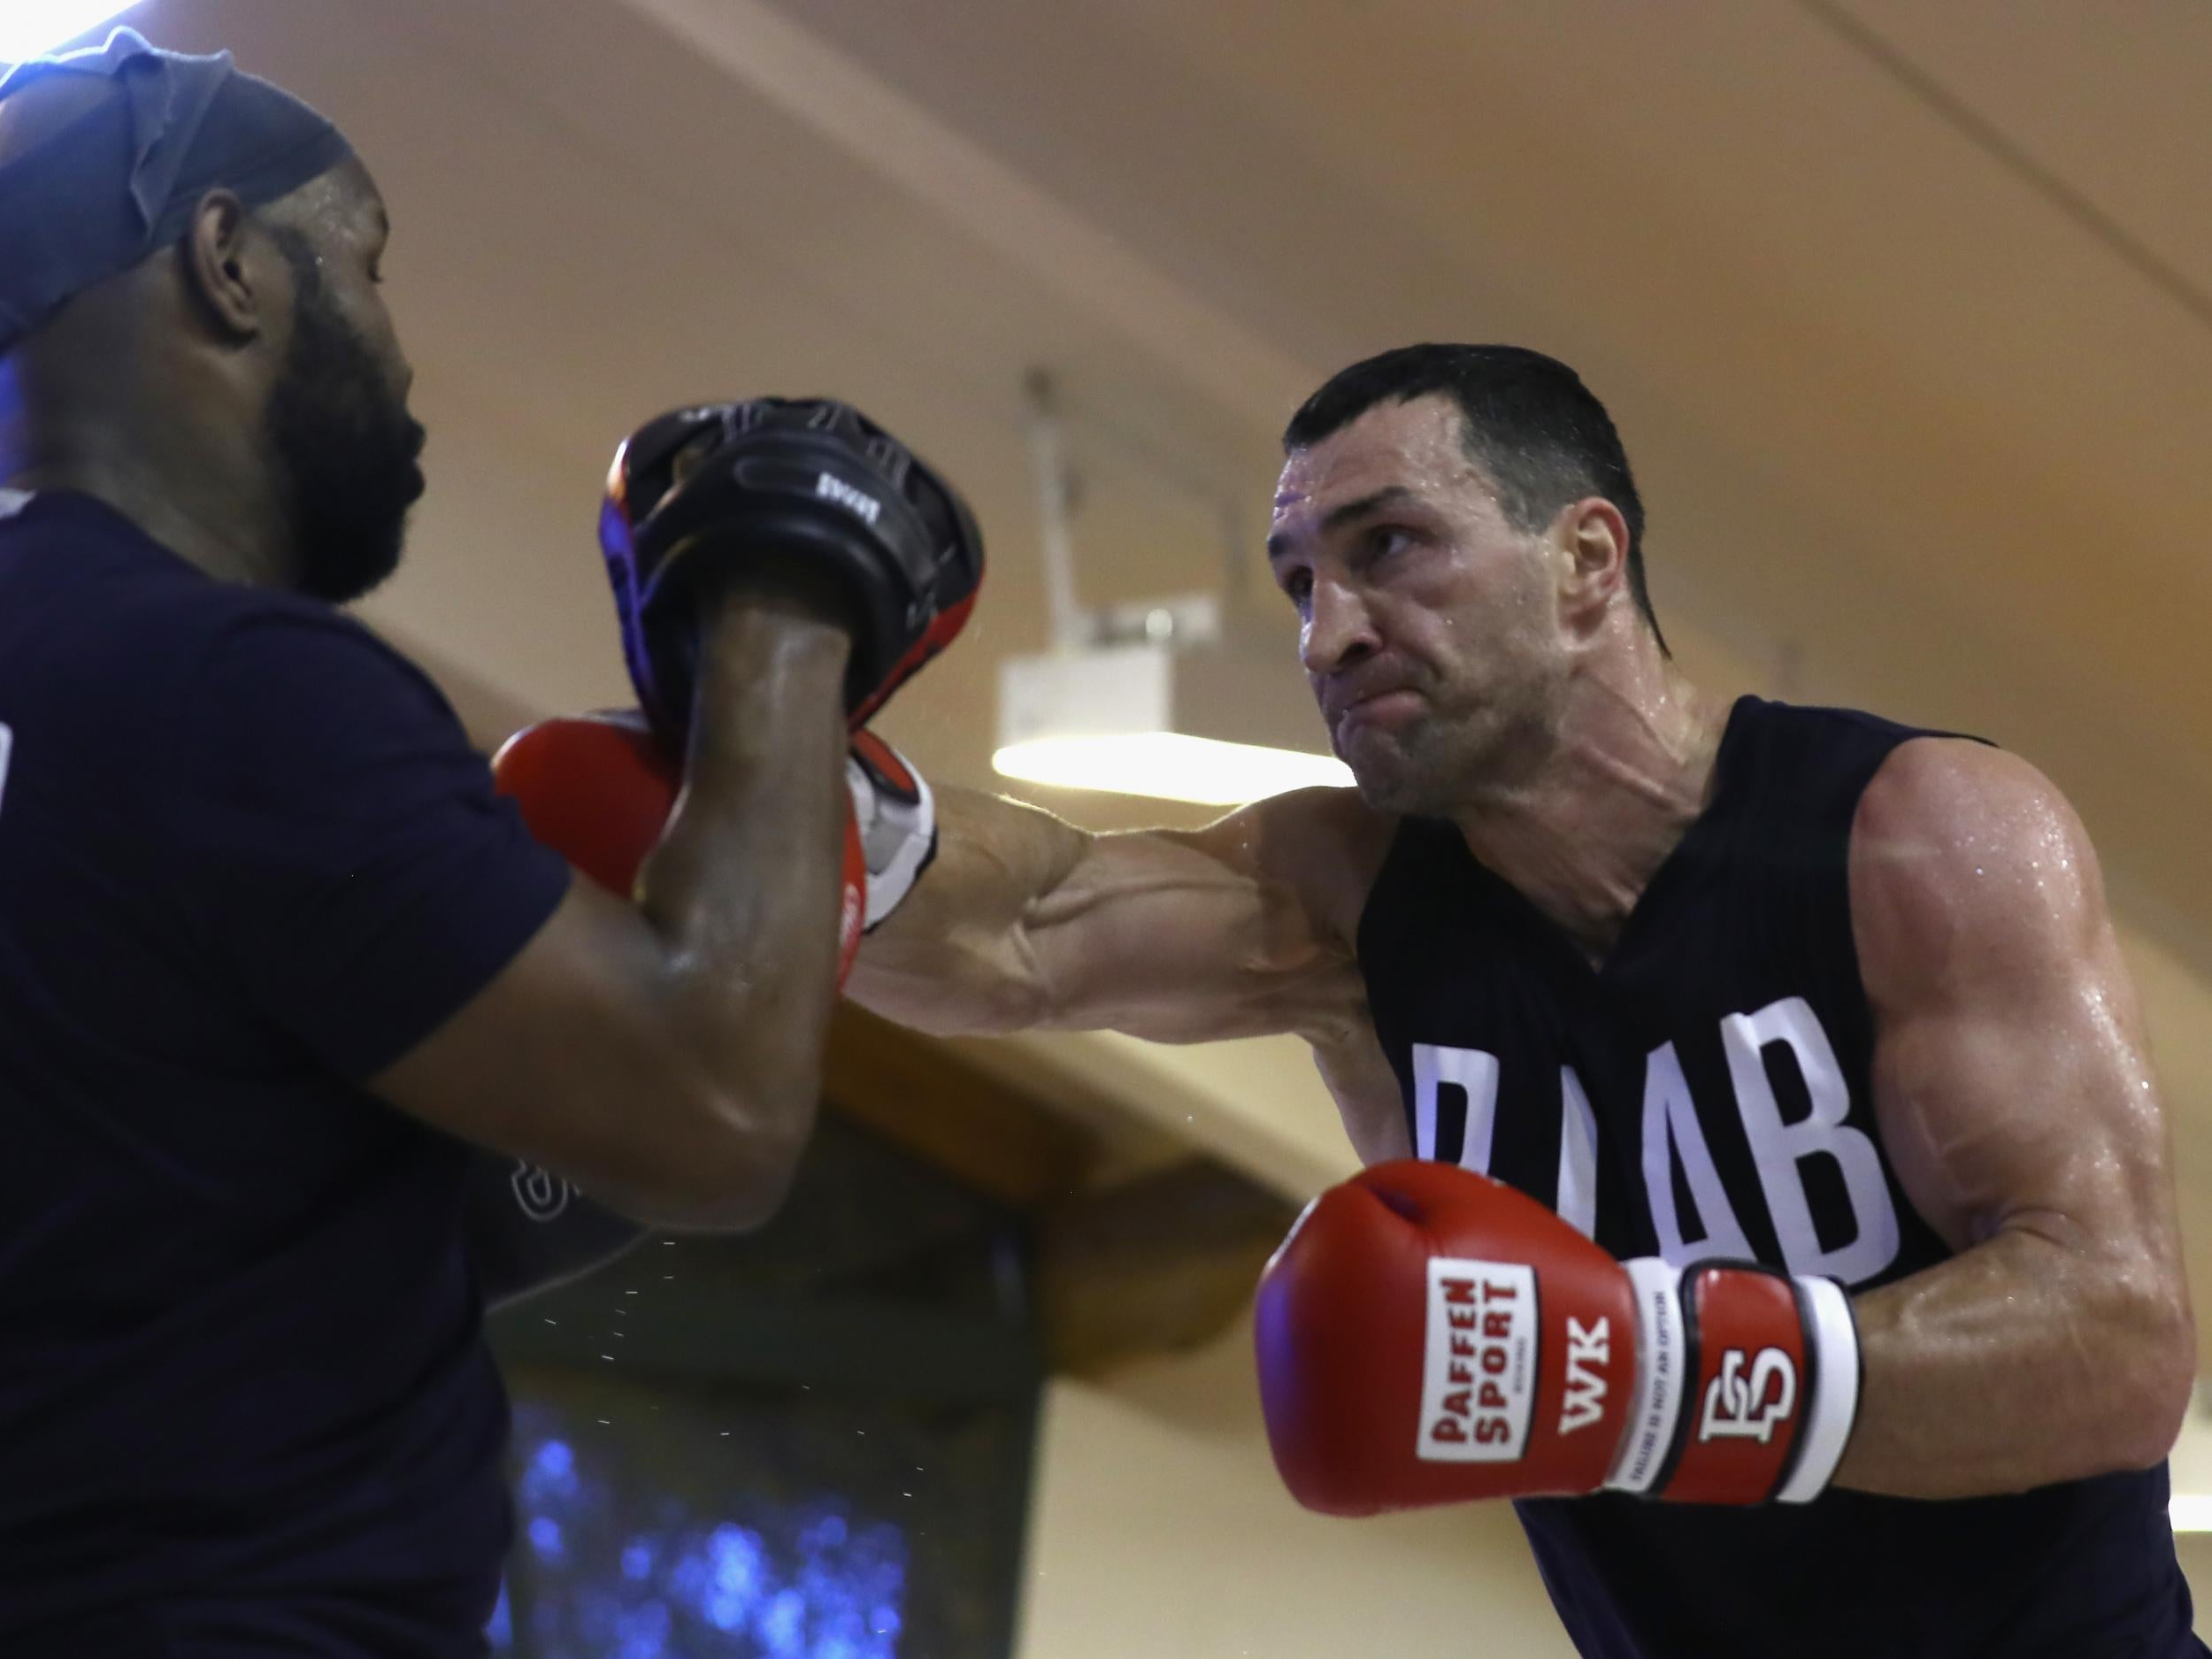 Inside Wladimir Klitschko's training camp - the closest thing to a